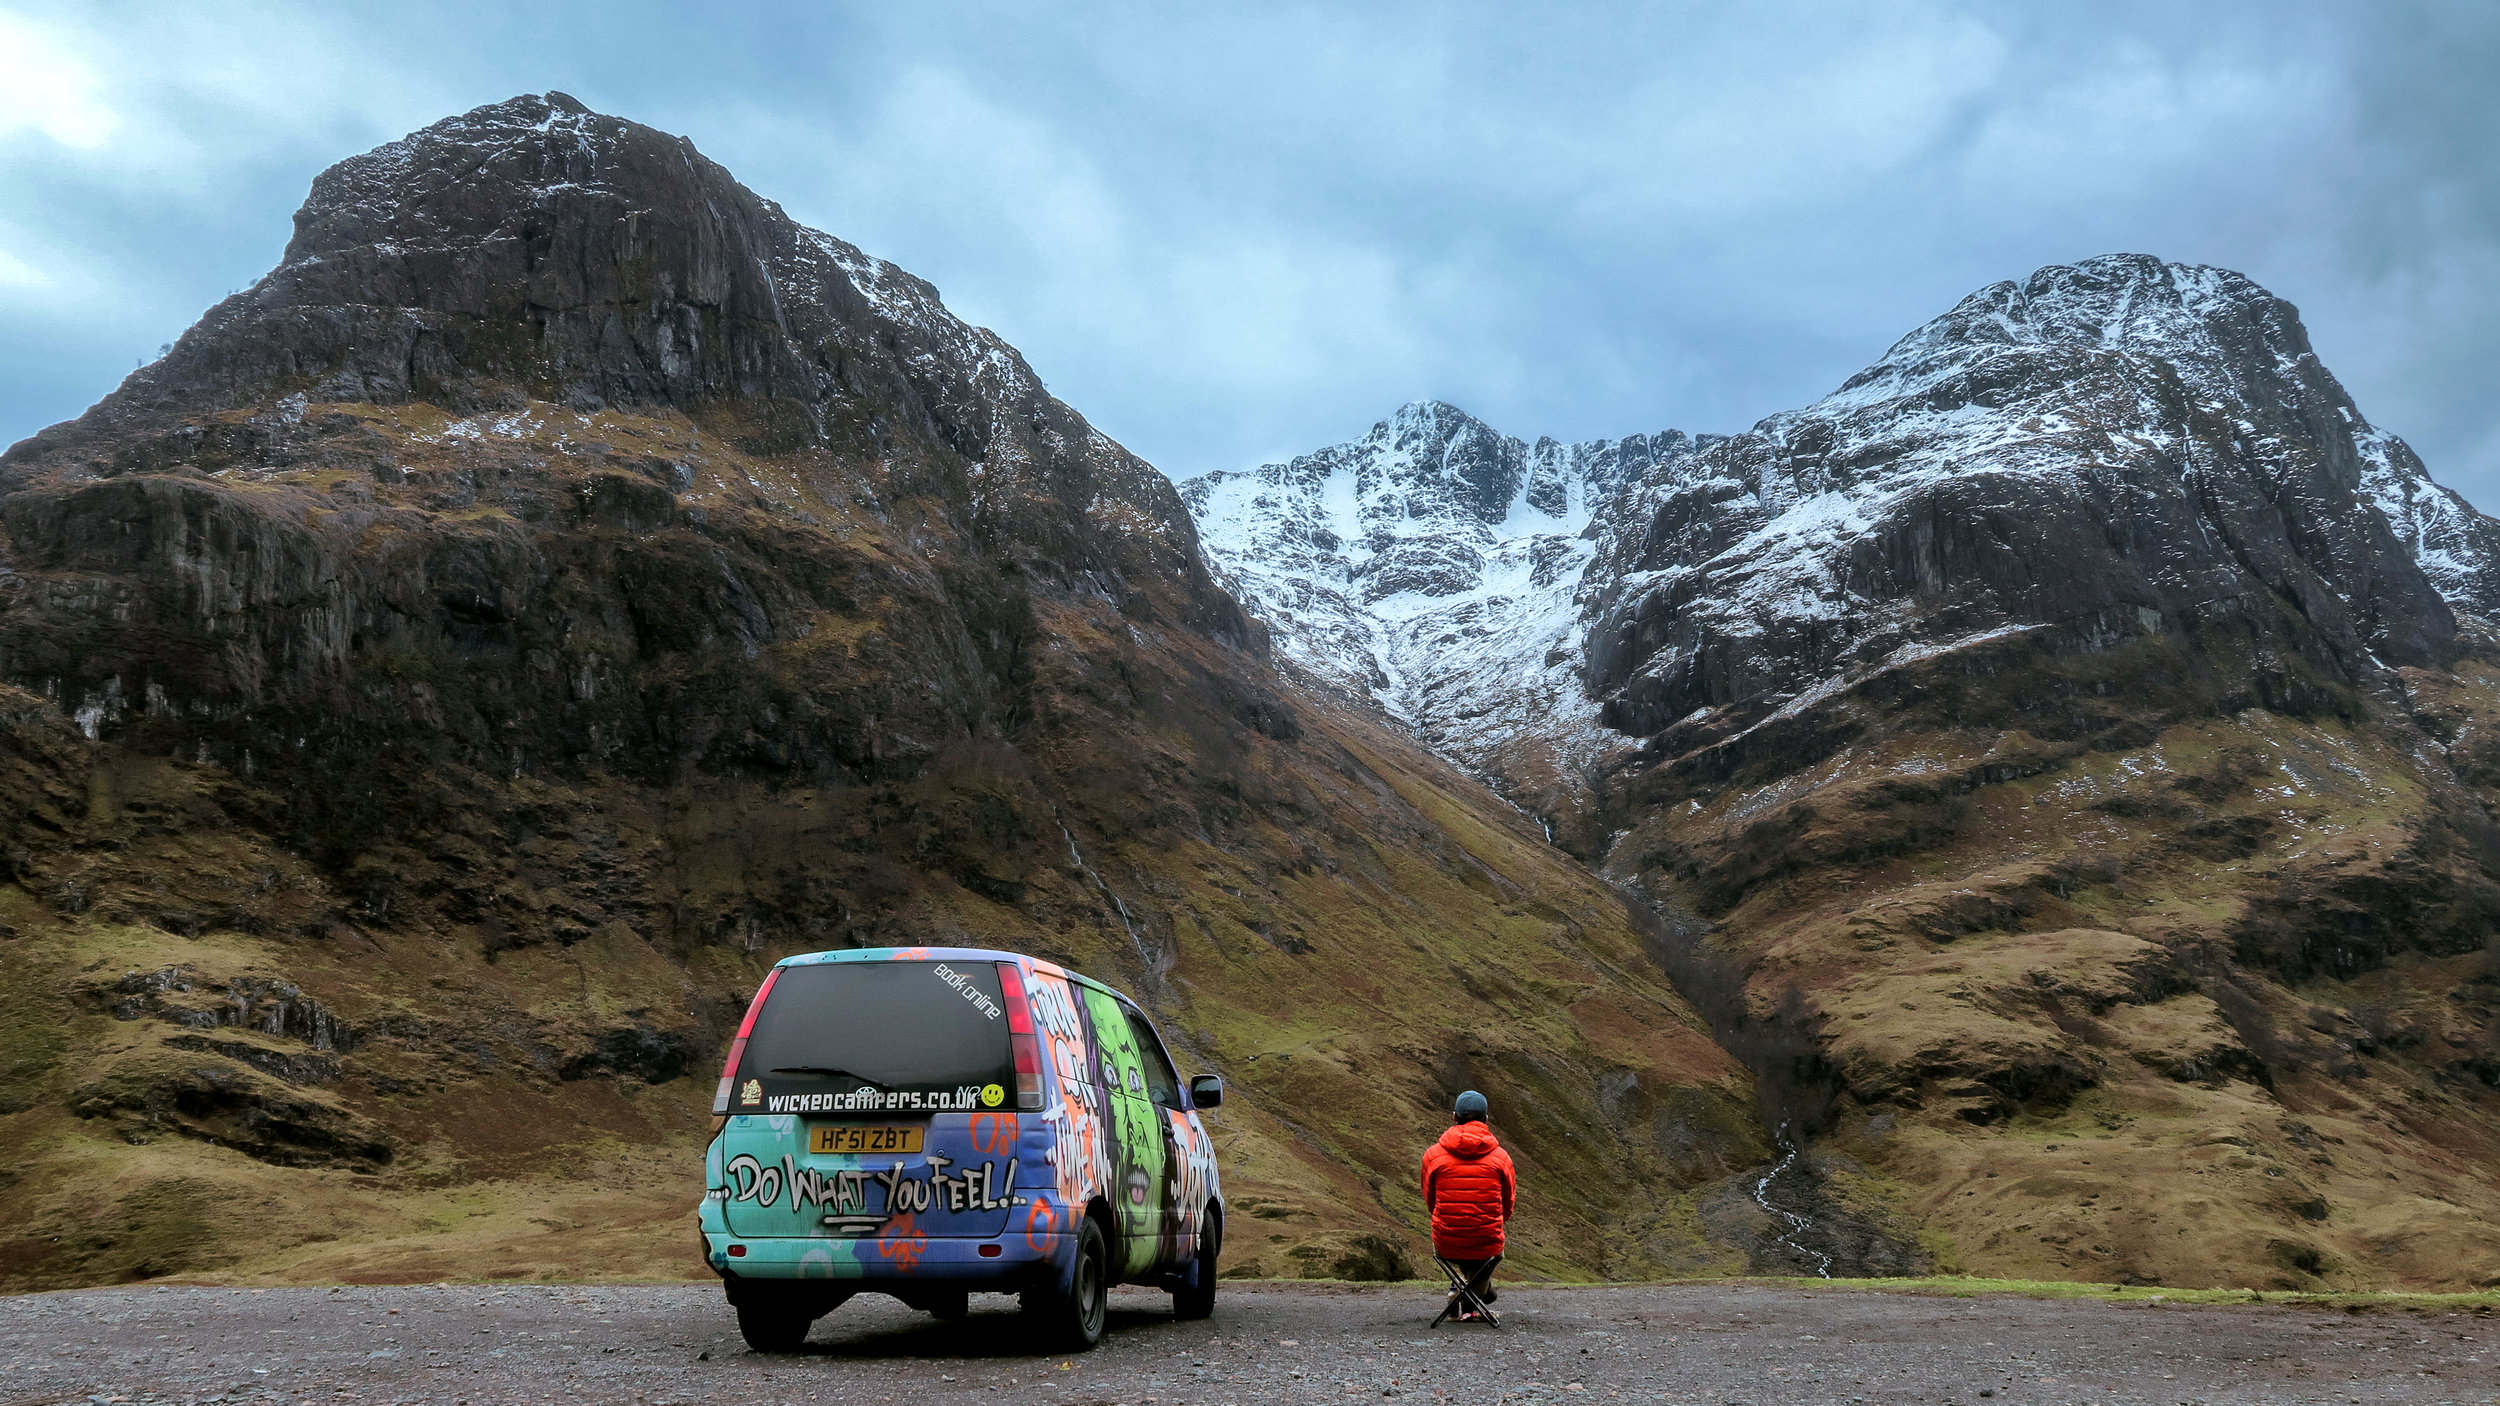 Wicked Camper Van Scotland